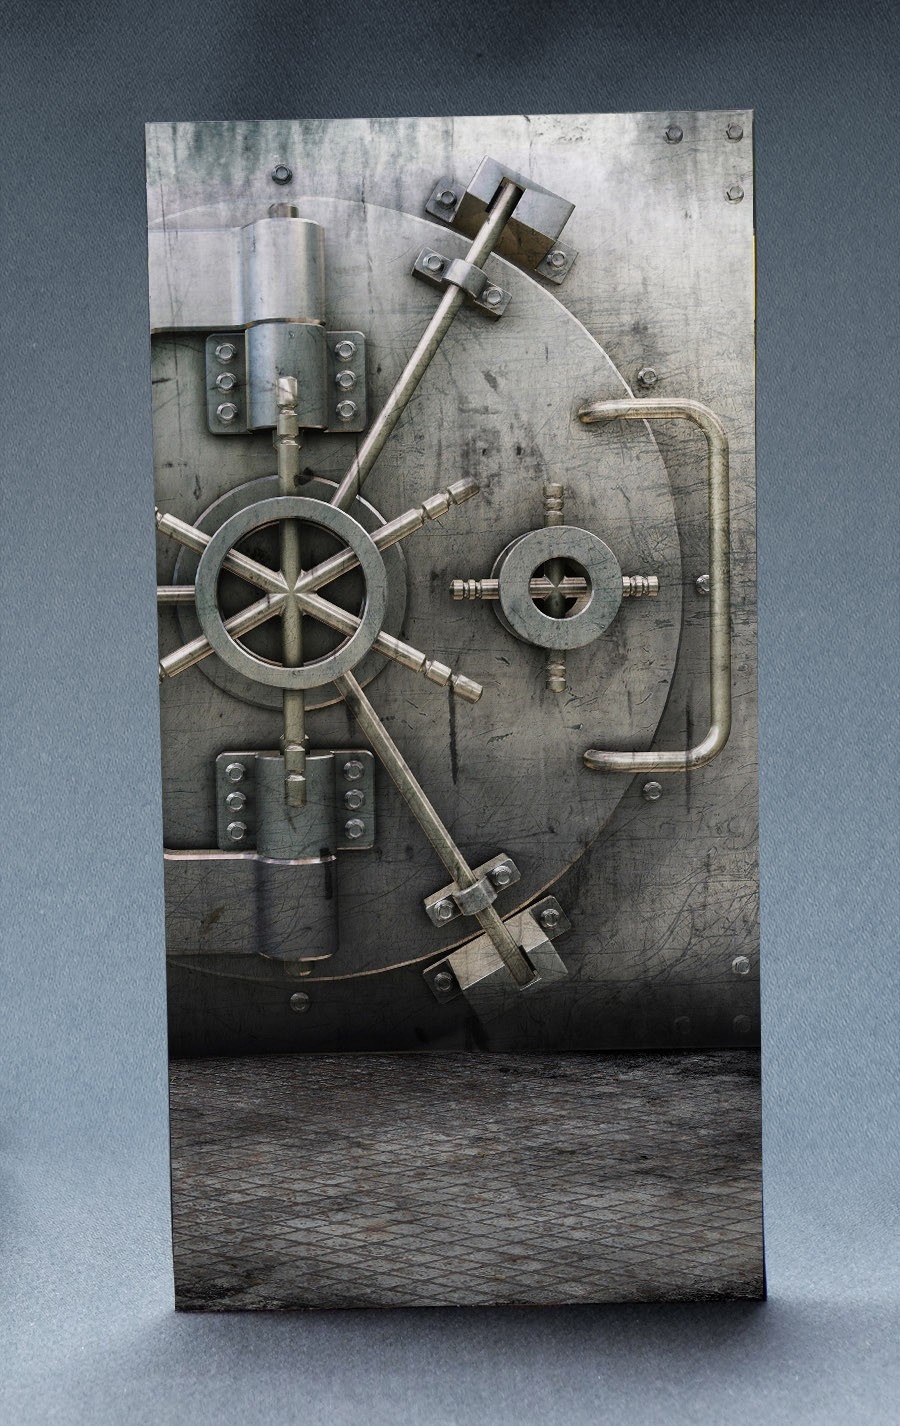 Bank Vault 1:6 Scale Striking Backdrop